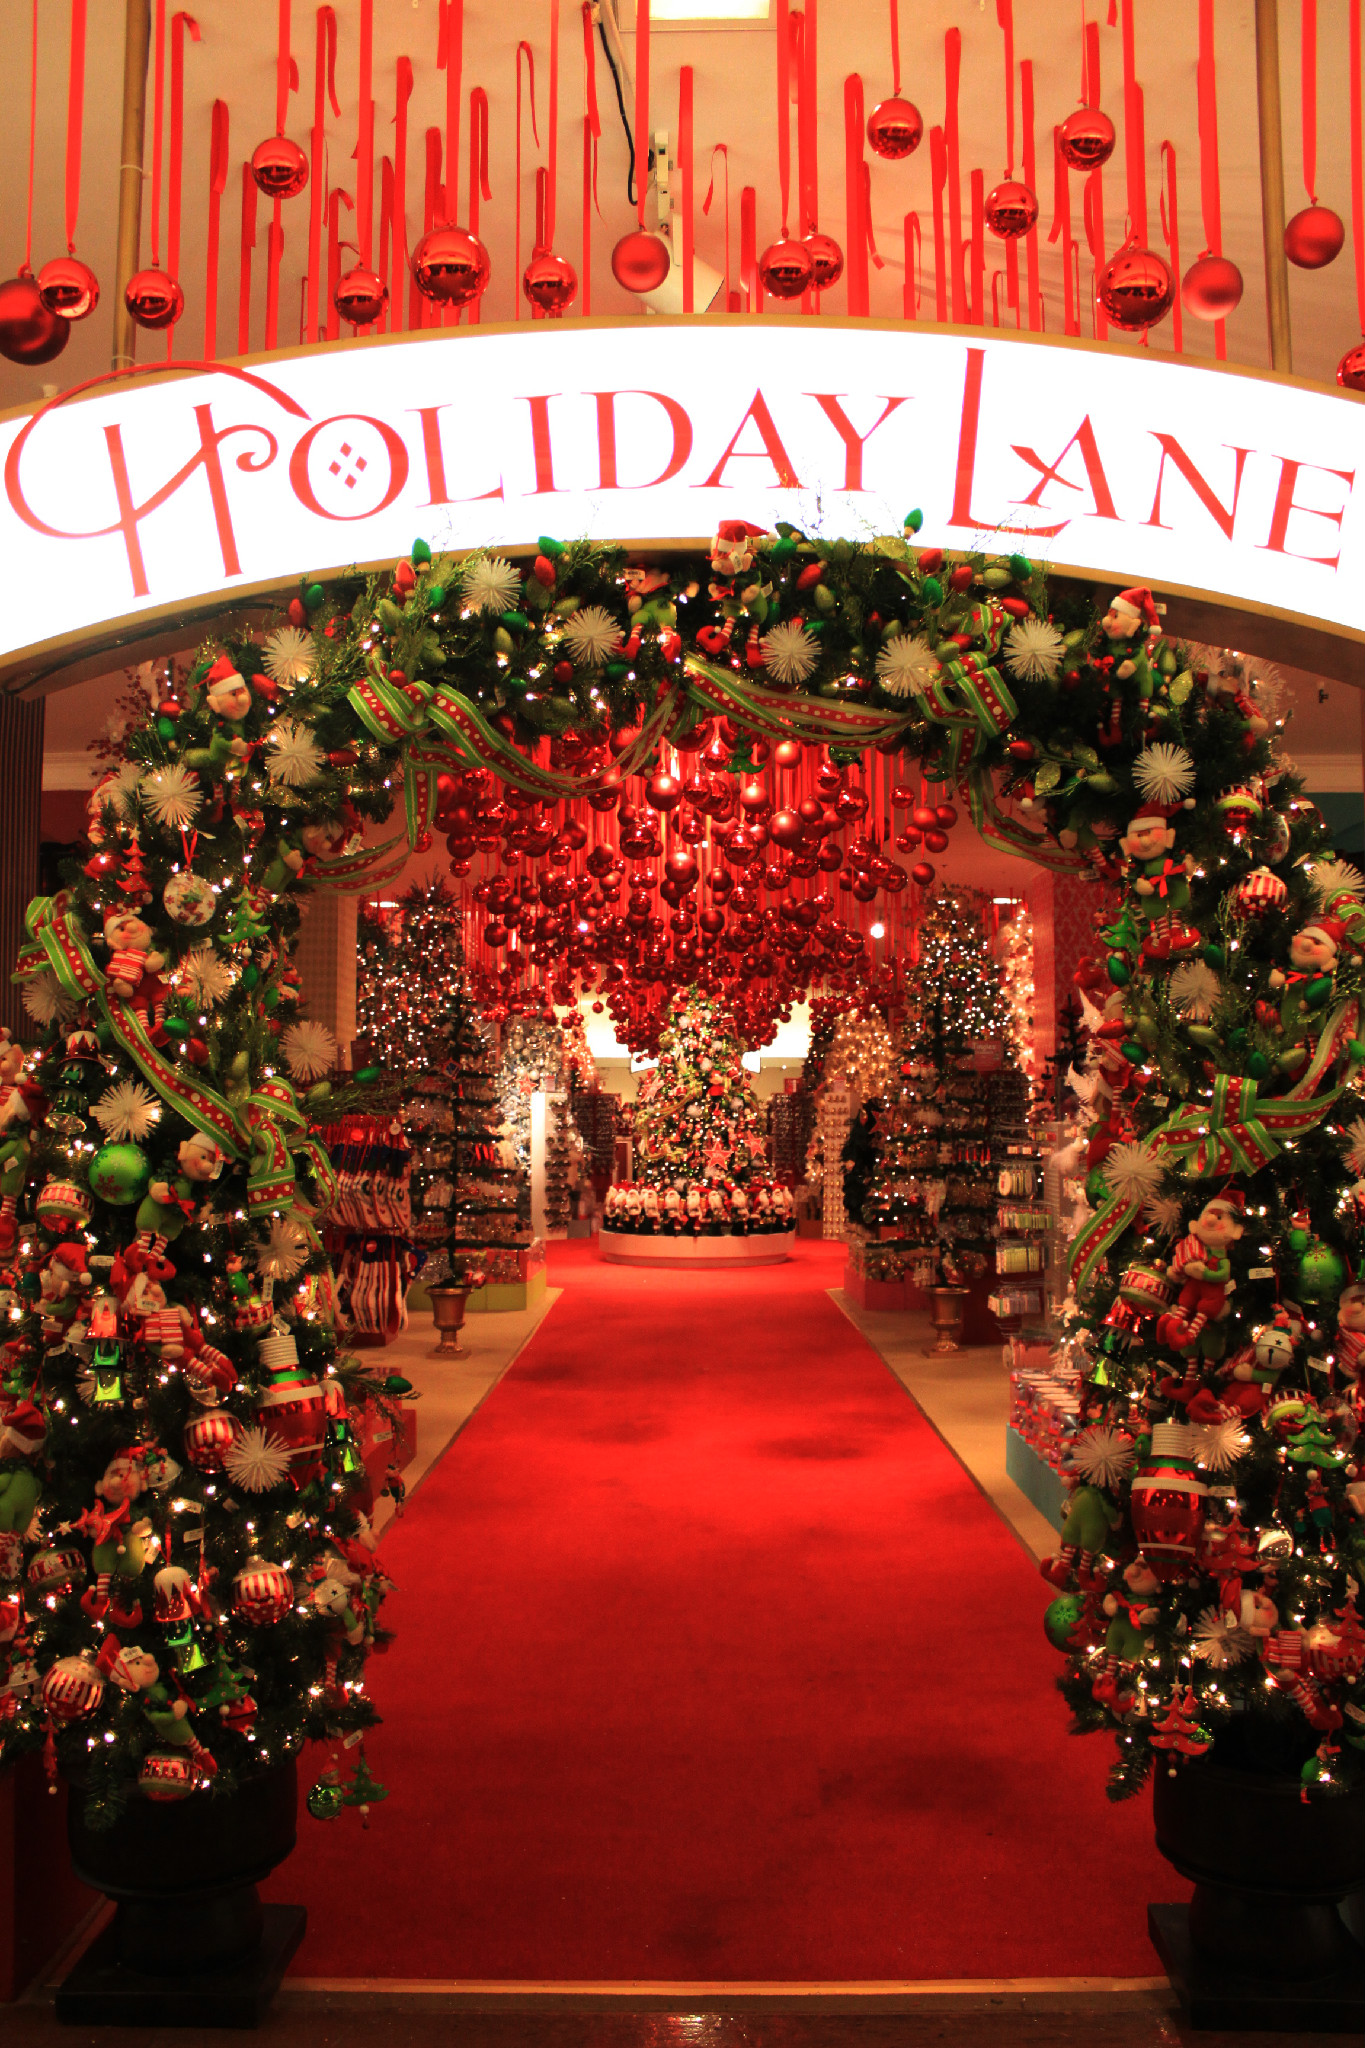 Natale a New York, Holday Lane, Macy's